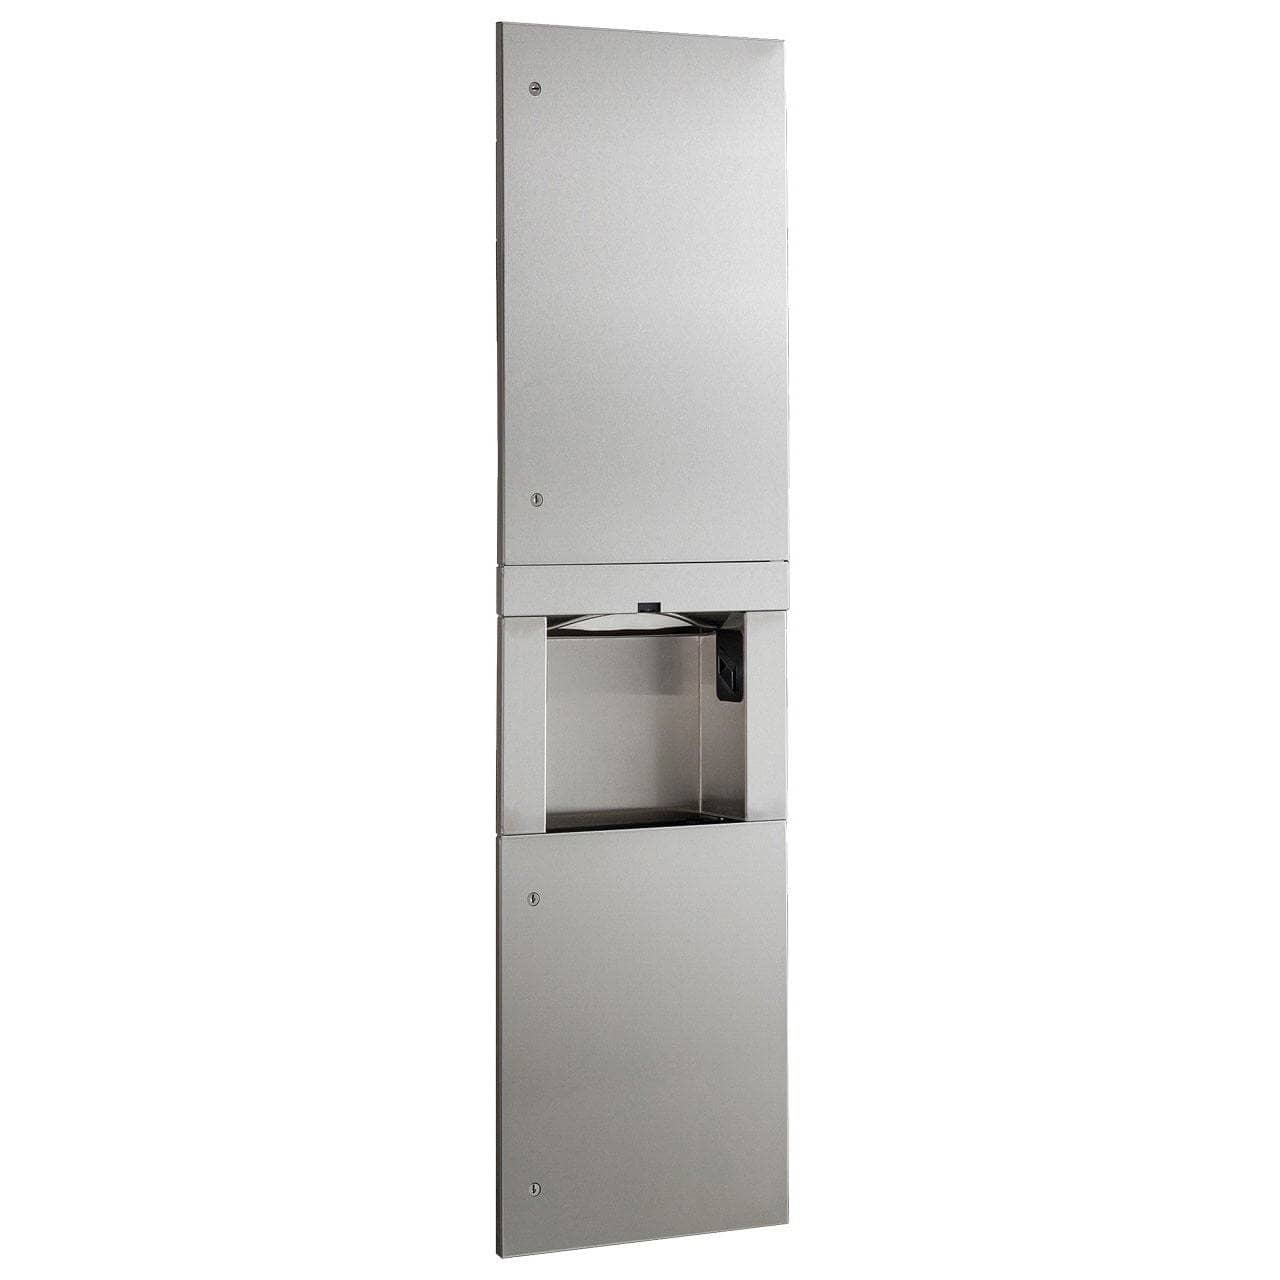 Bobrick B-38030 Automatic Commercial Paper Towel Dispenser/Hand Dryer/Waste Receptacle, Recessed-Mounted, Stainless Steel - TotalRestroom.com